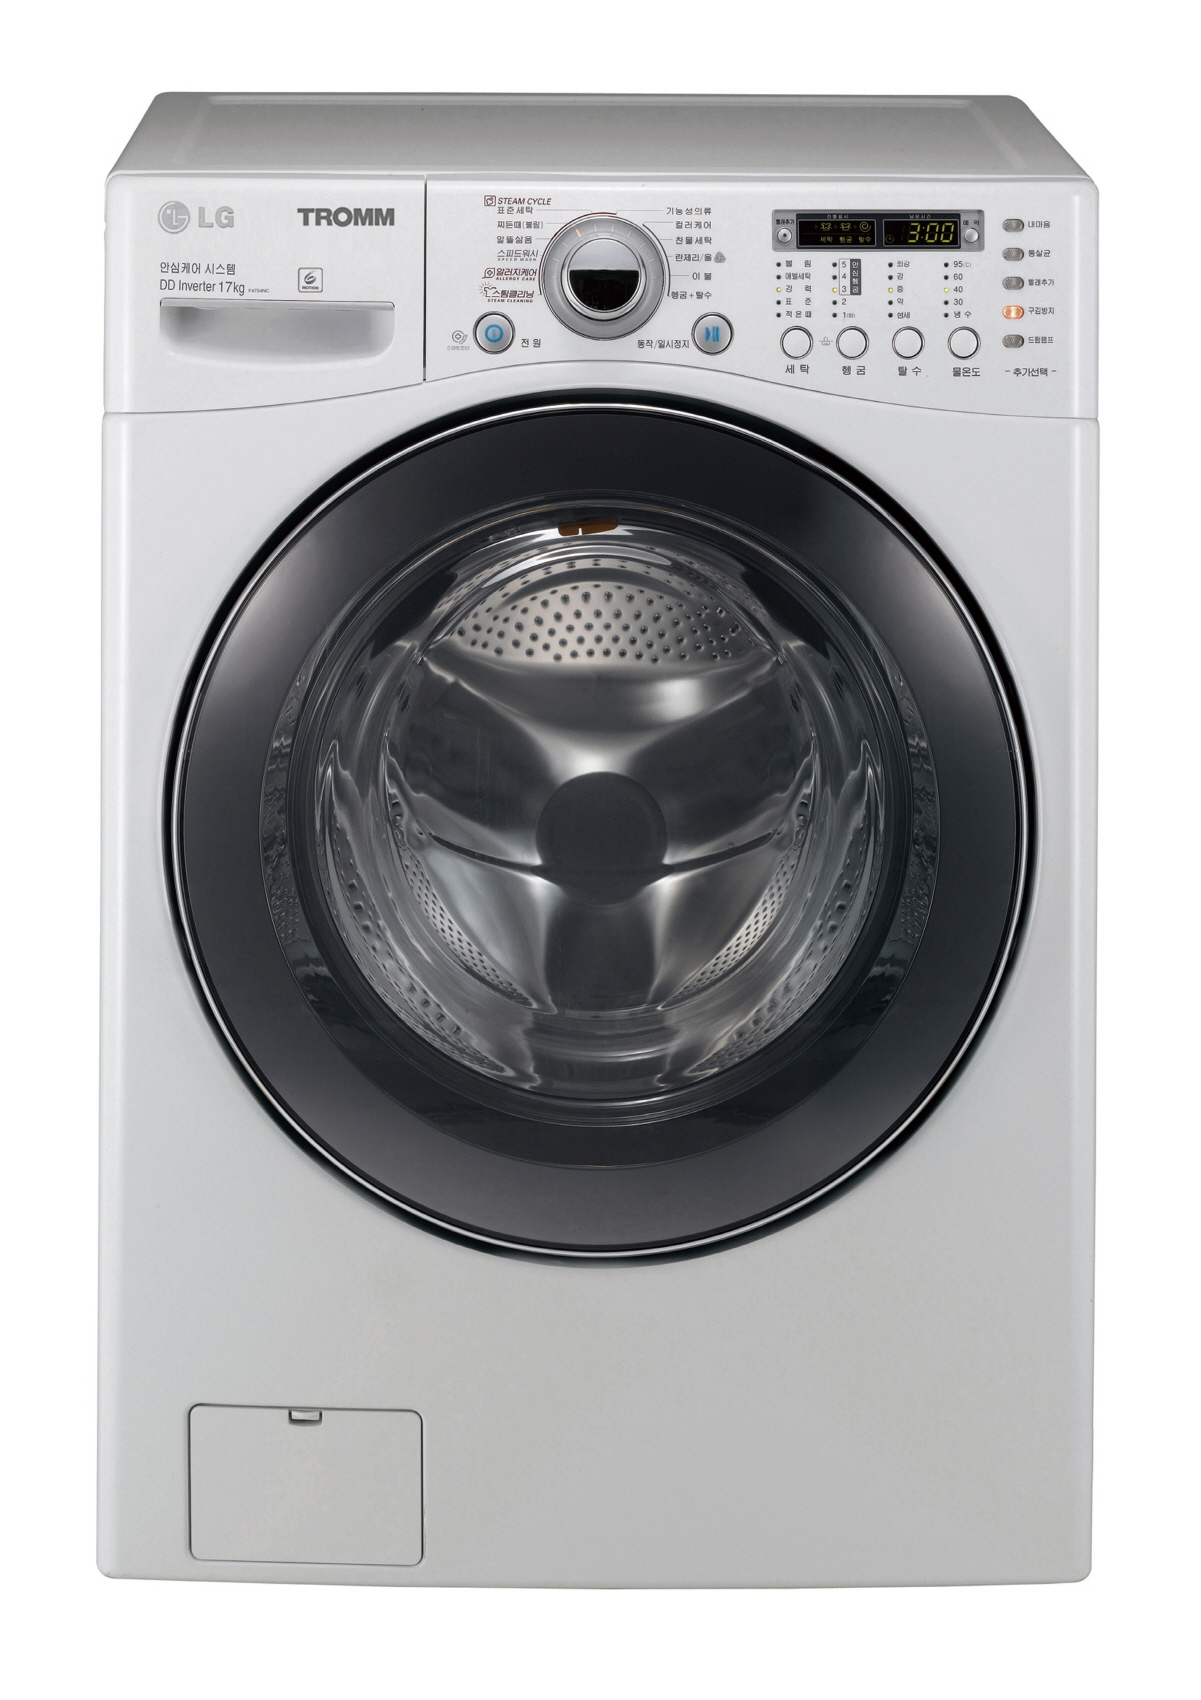 lg steam washer tromm review